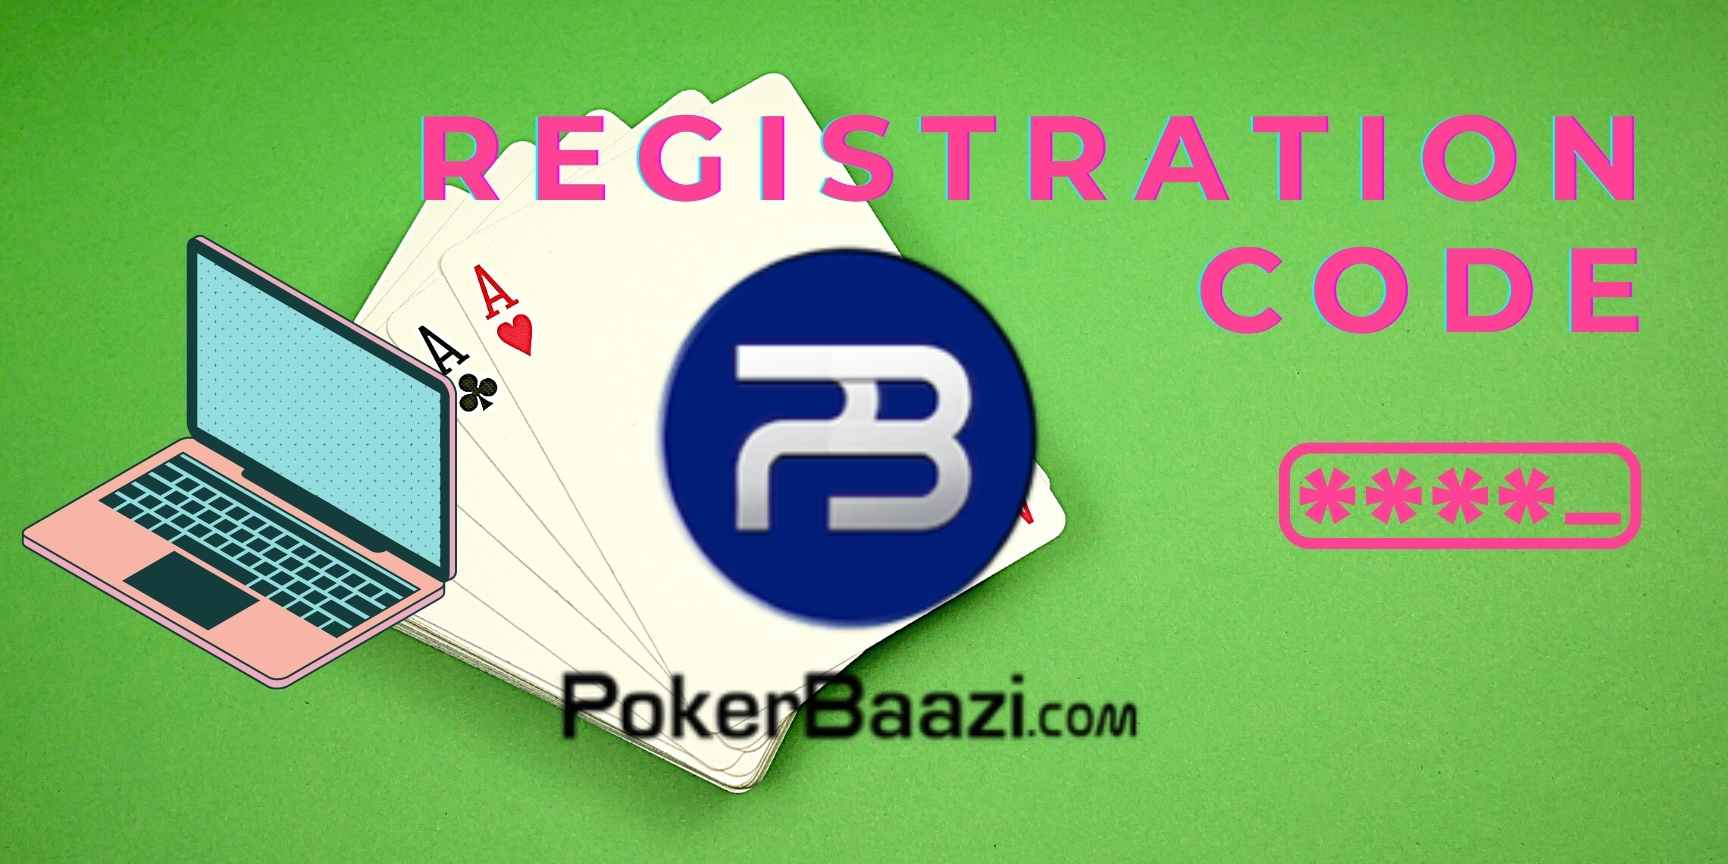 PokerBaazi registration code. How could this help? Why is it useful for players?